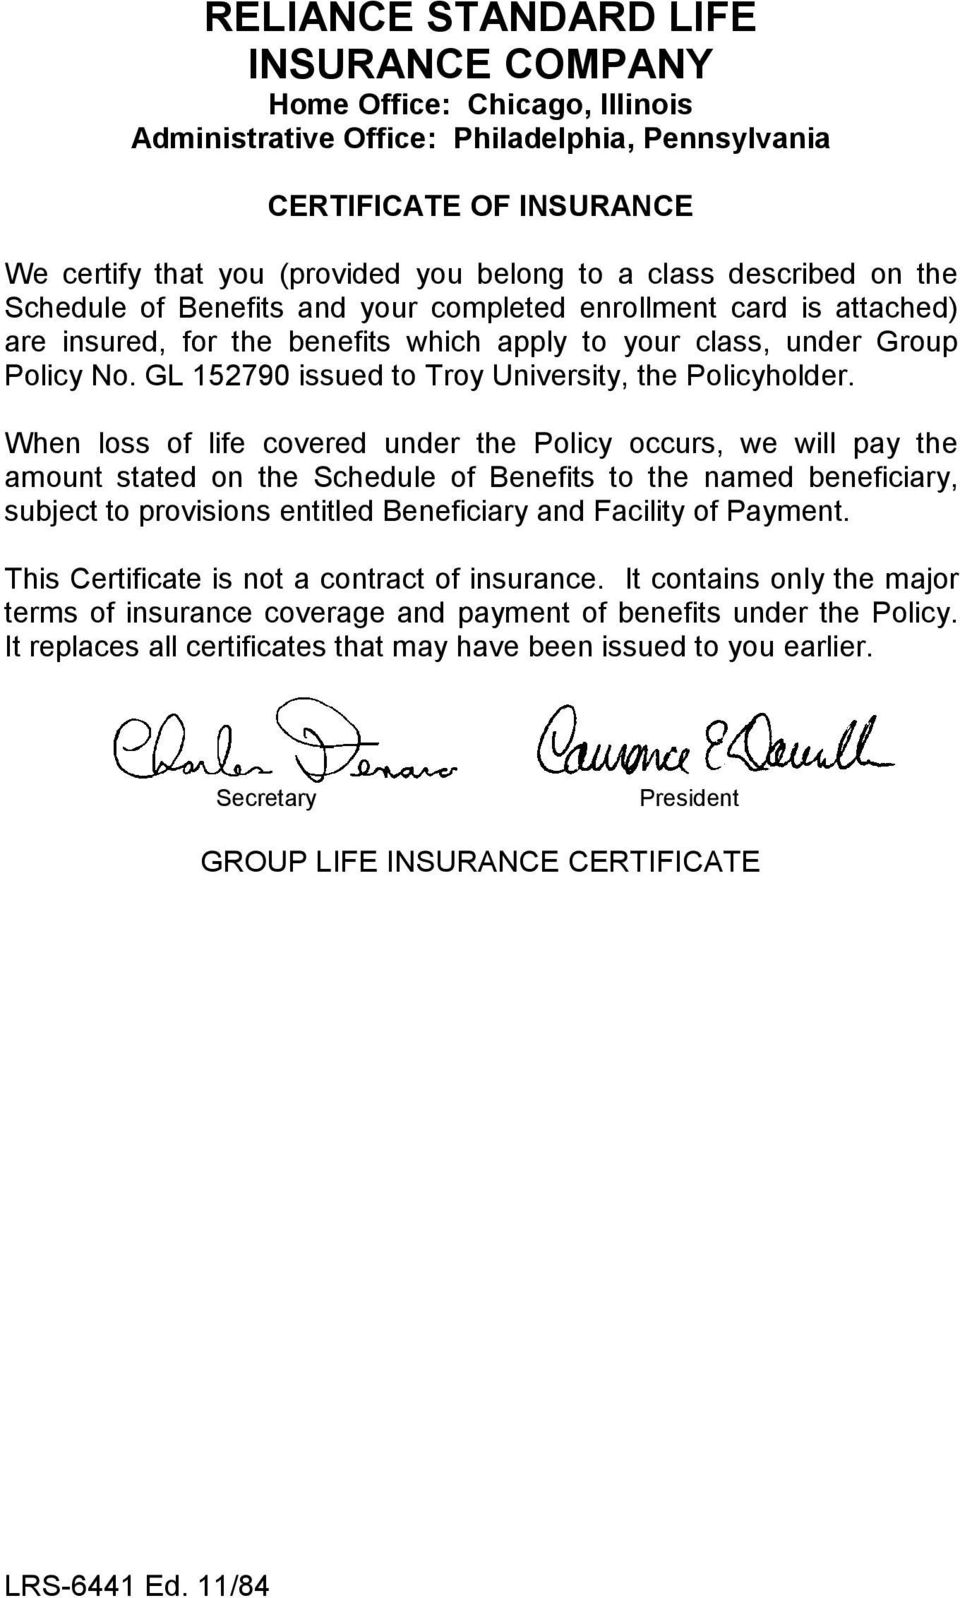 GL 152790 issued to Troy University, the Policyholder.